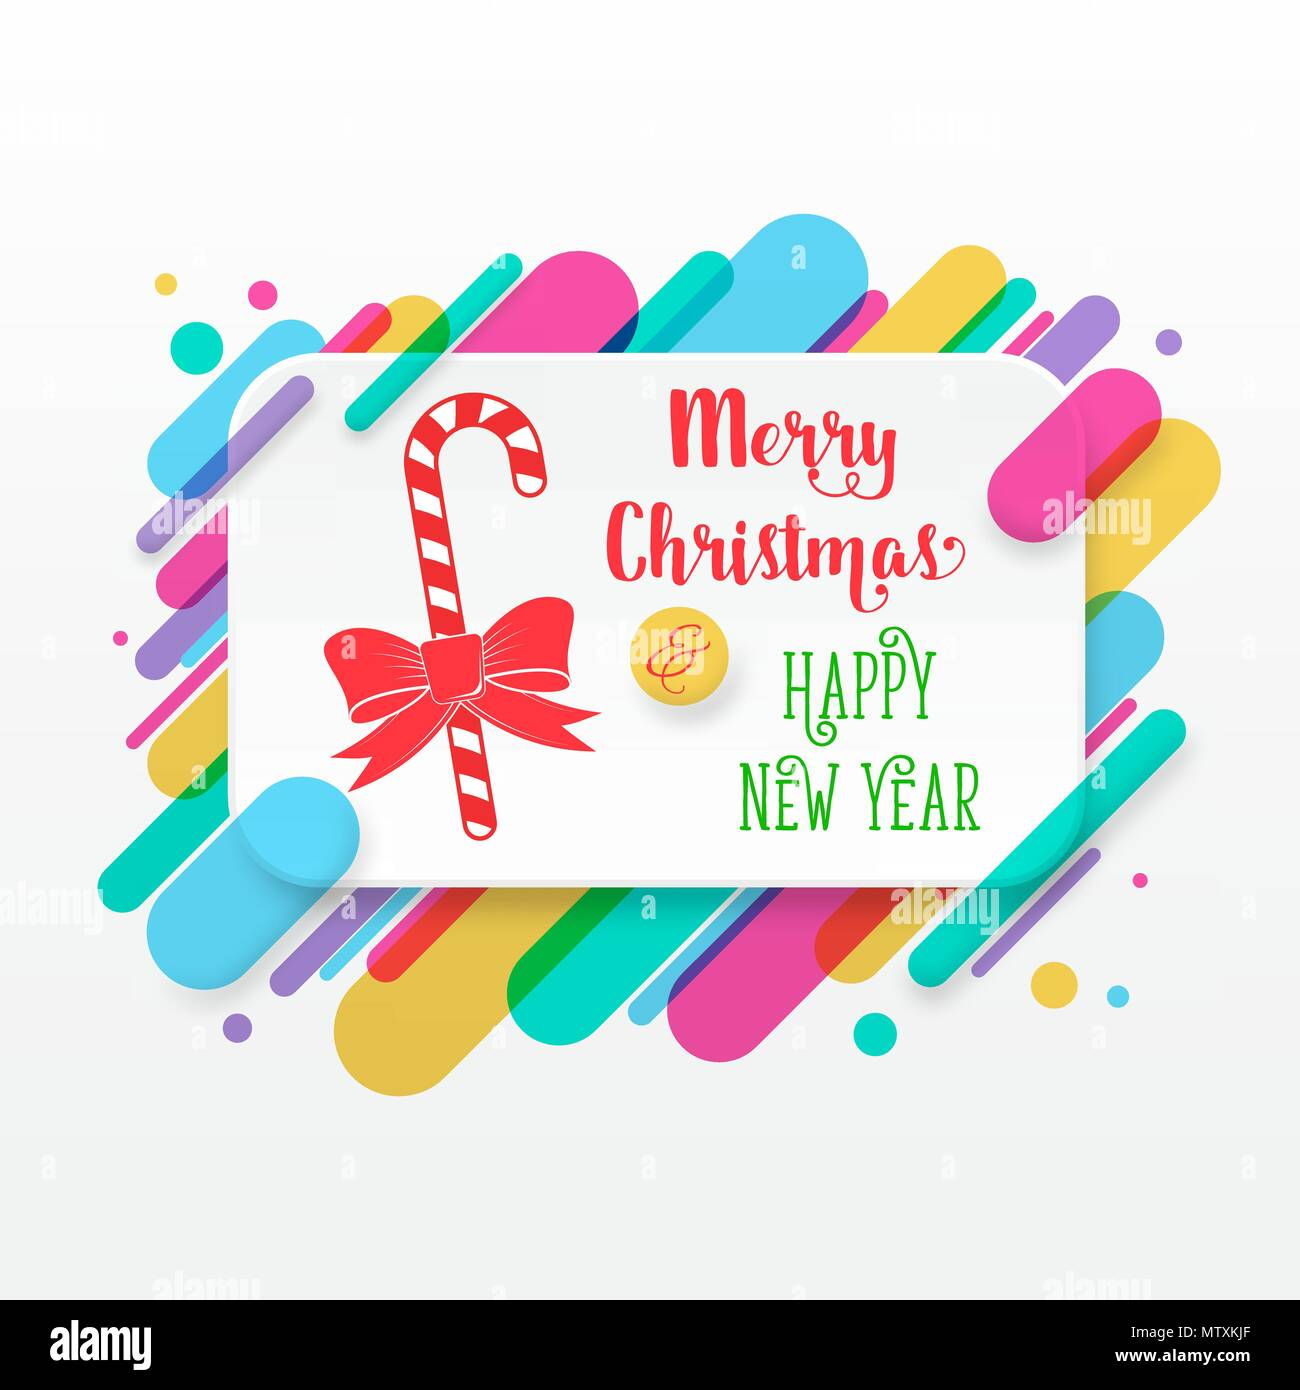 Merry Christmas and Happy New Year greeting card with abstract ...